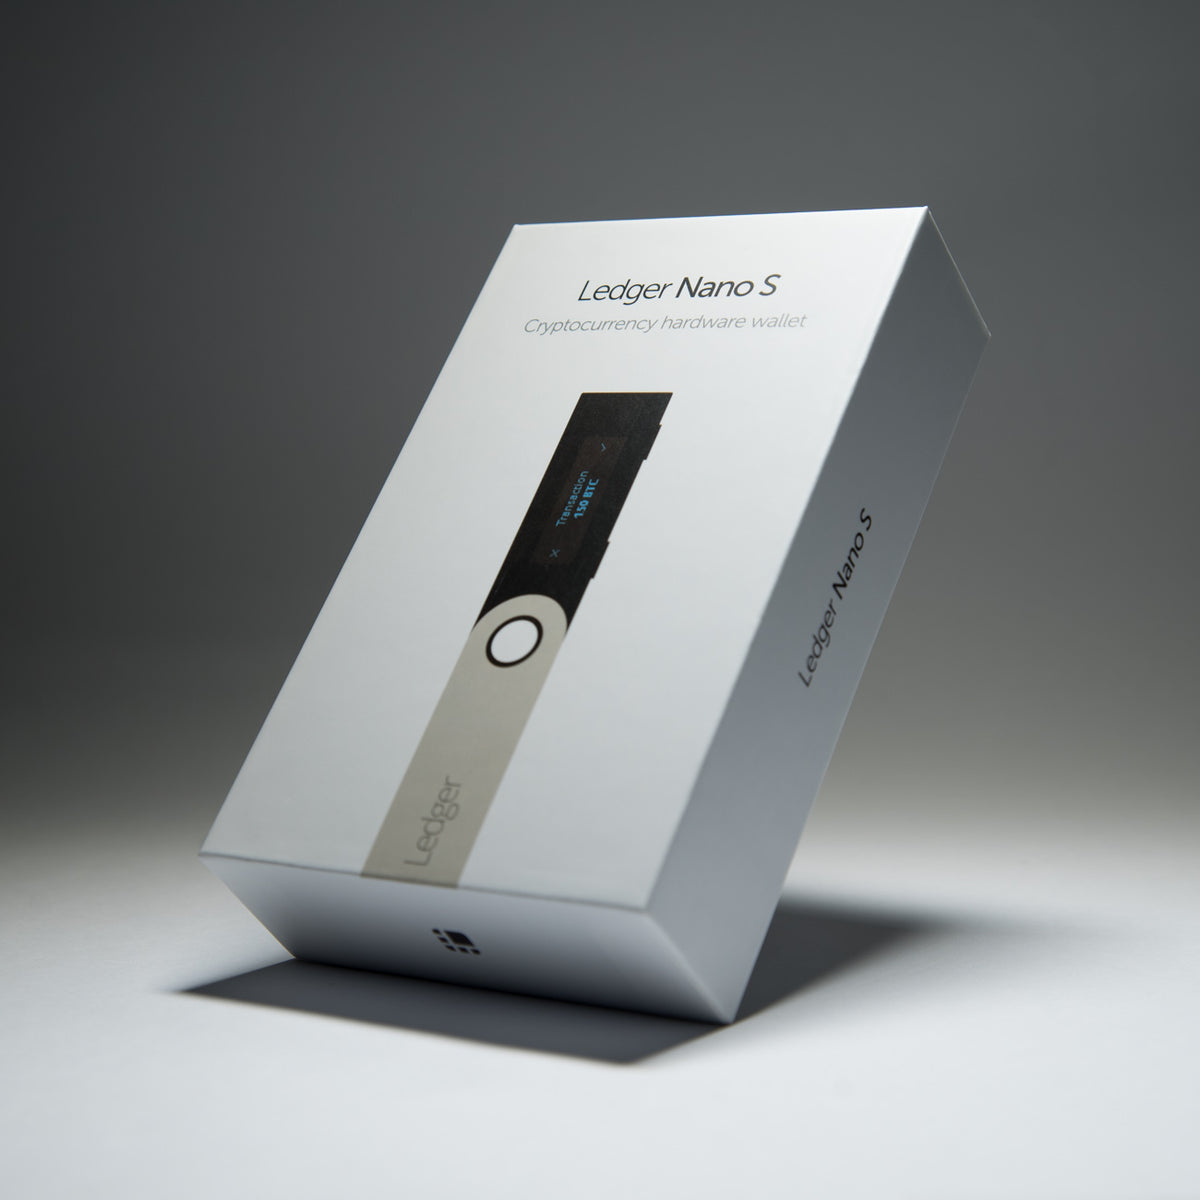 Coinstop | Buy Ledger Nano S in Australia | Free shipping